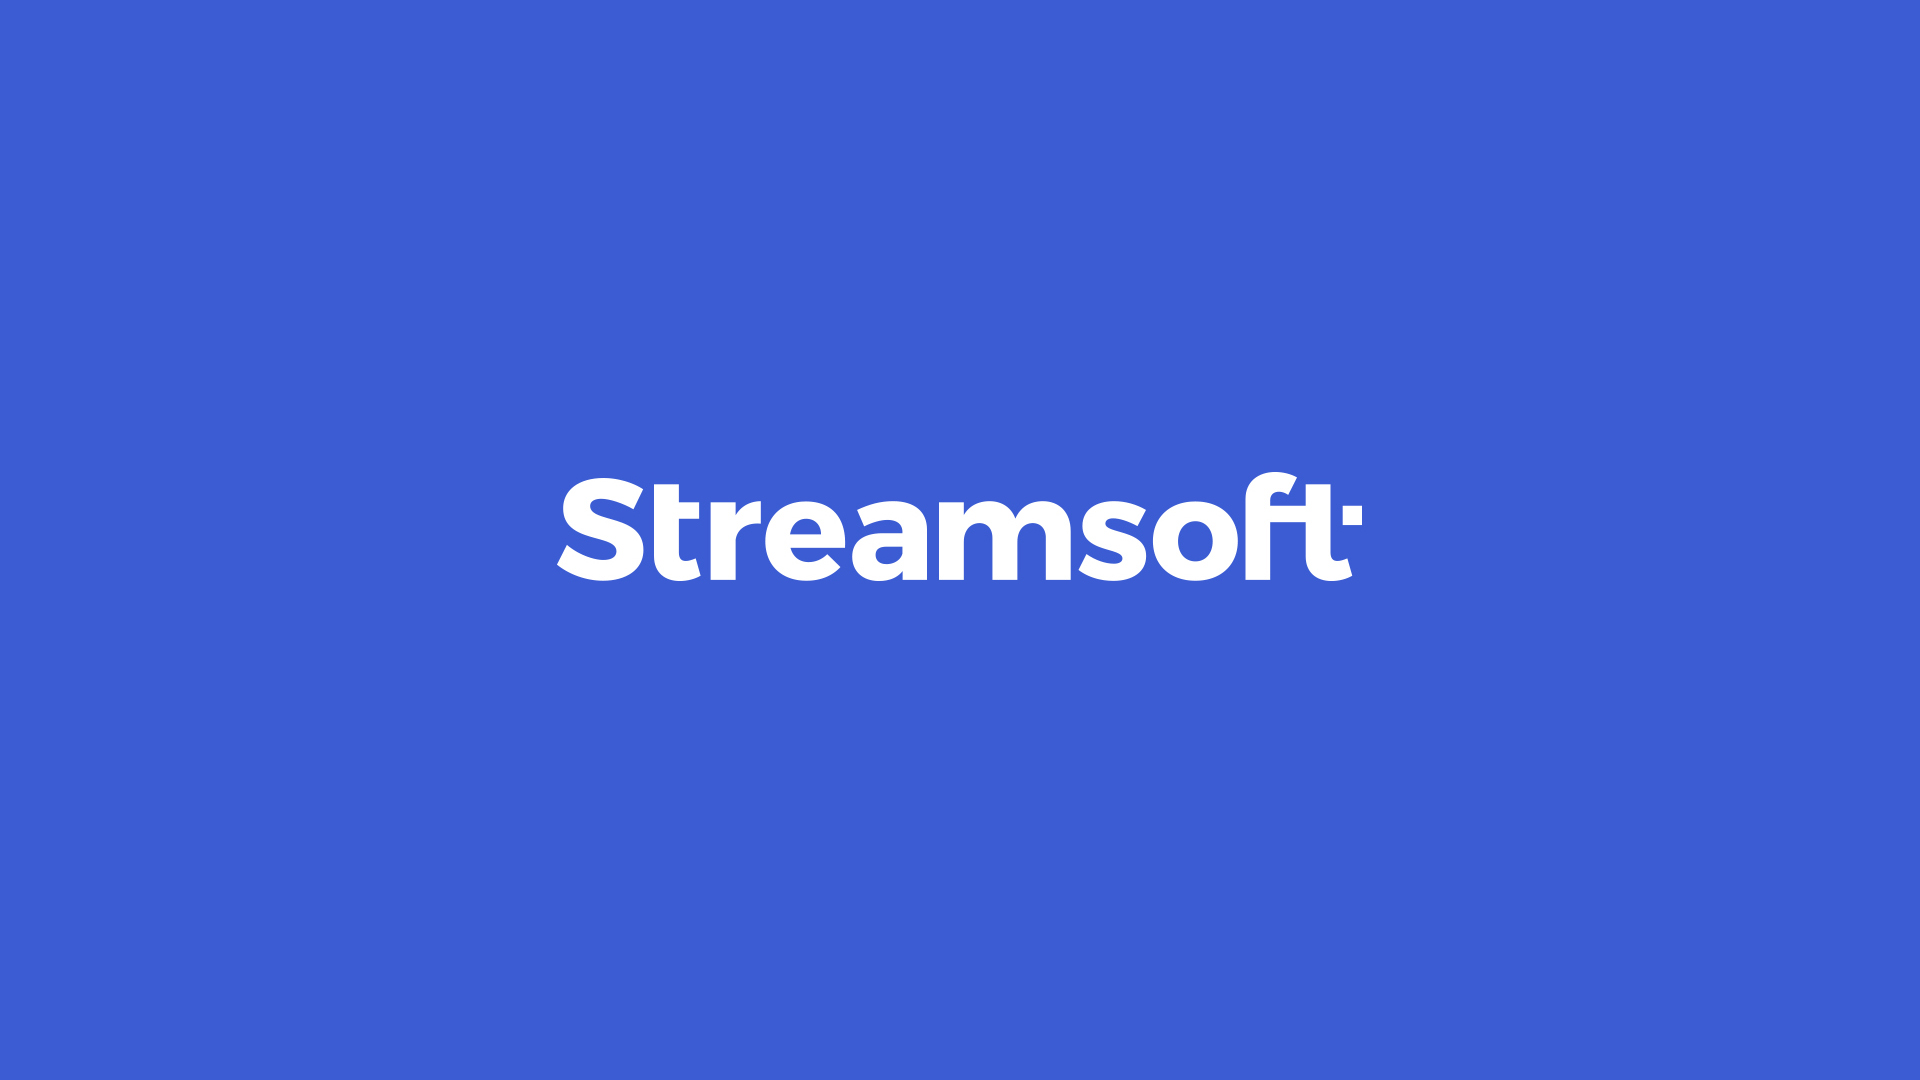 1701_STREAMSOFT_01